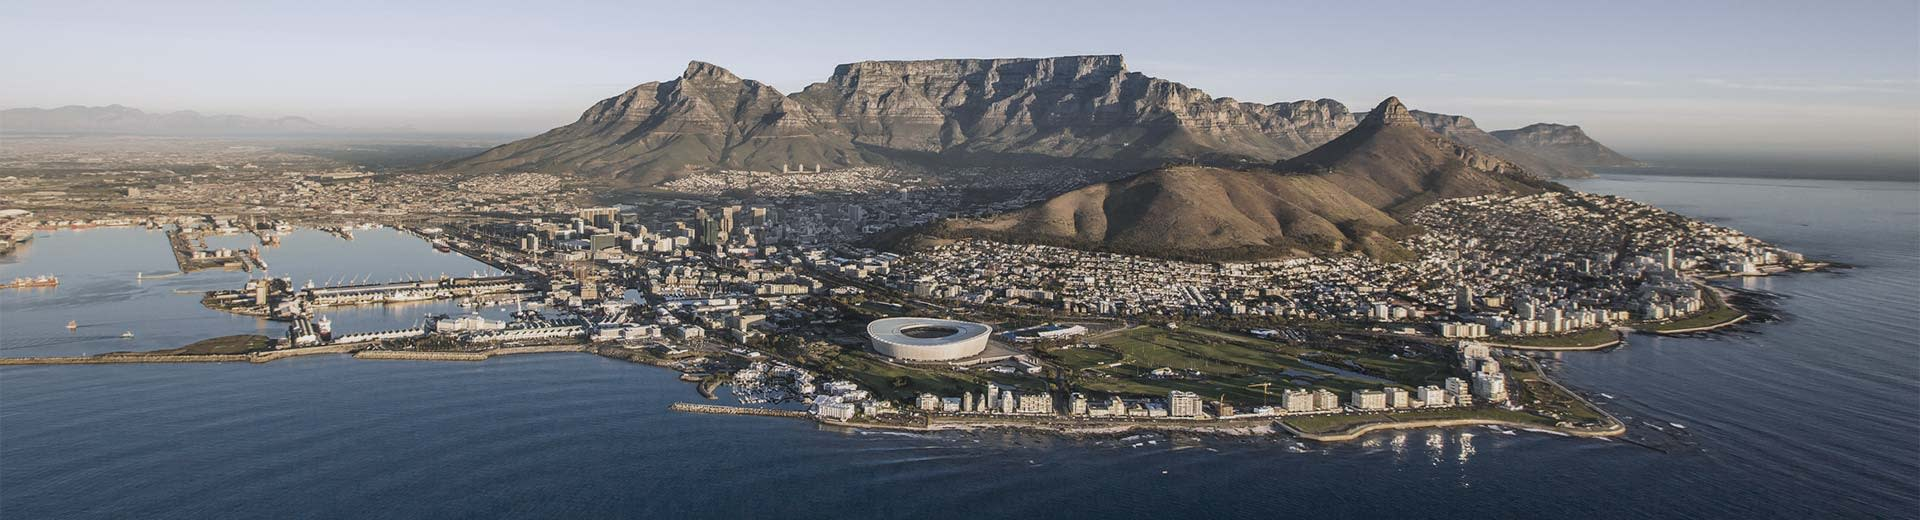 The famous Table Mountain behind the sprawling metropolis of Cape Town